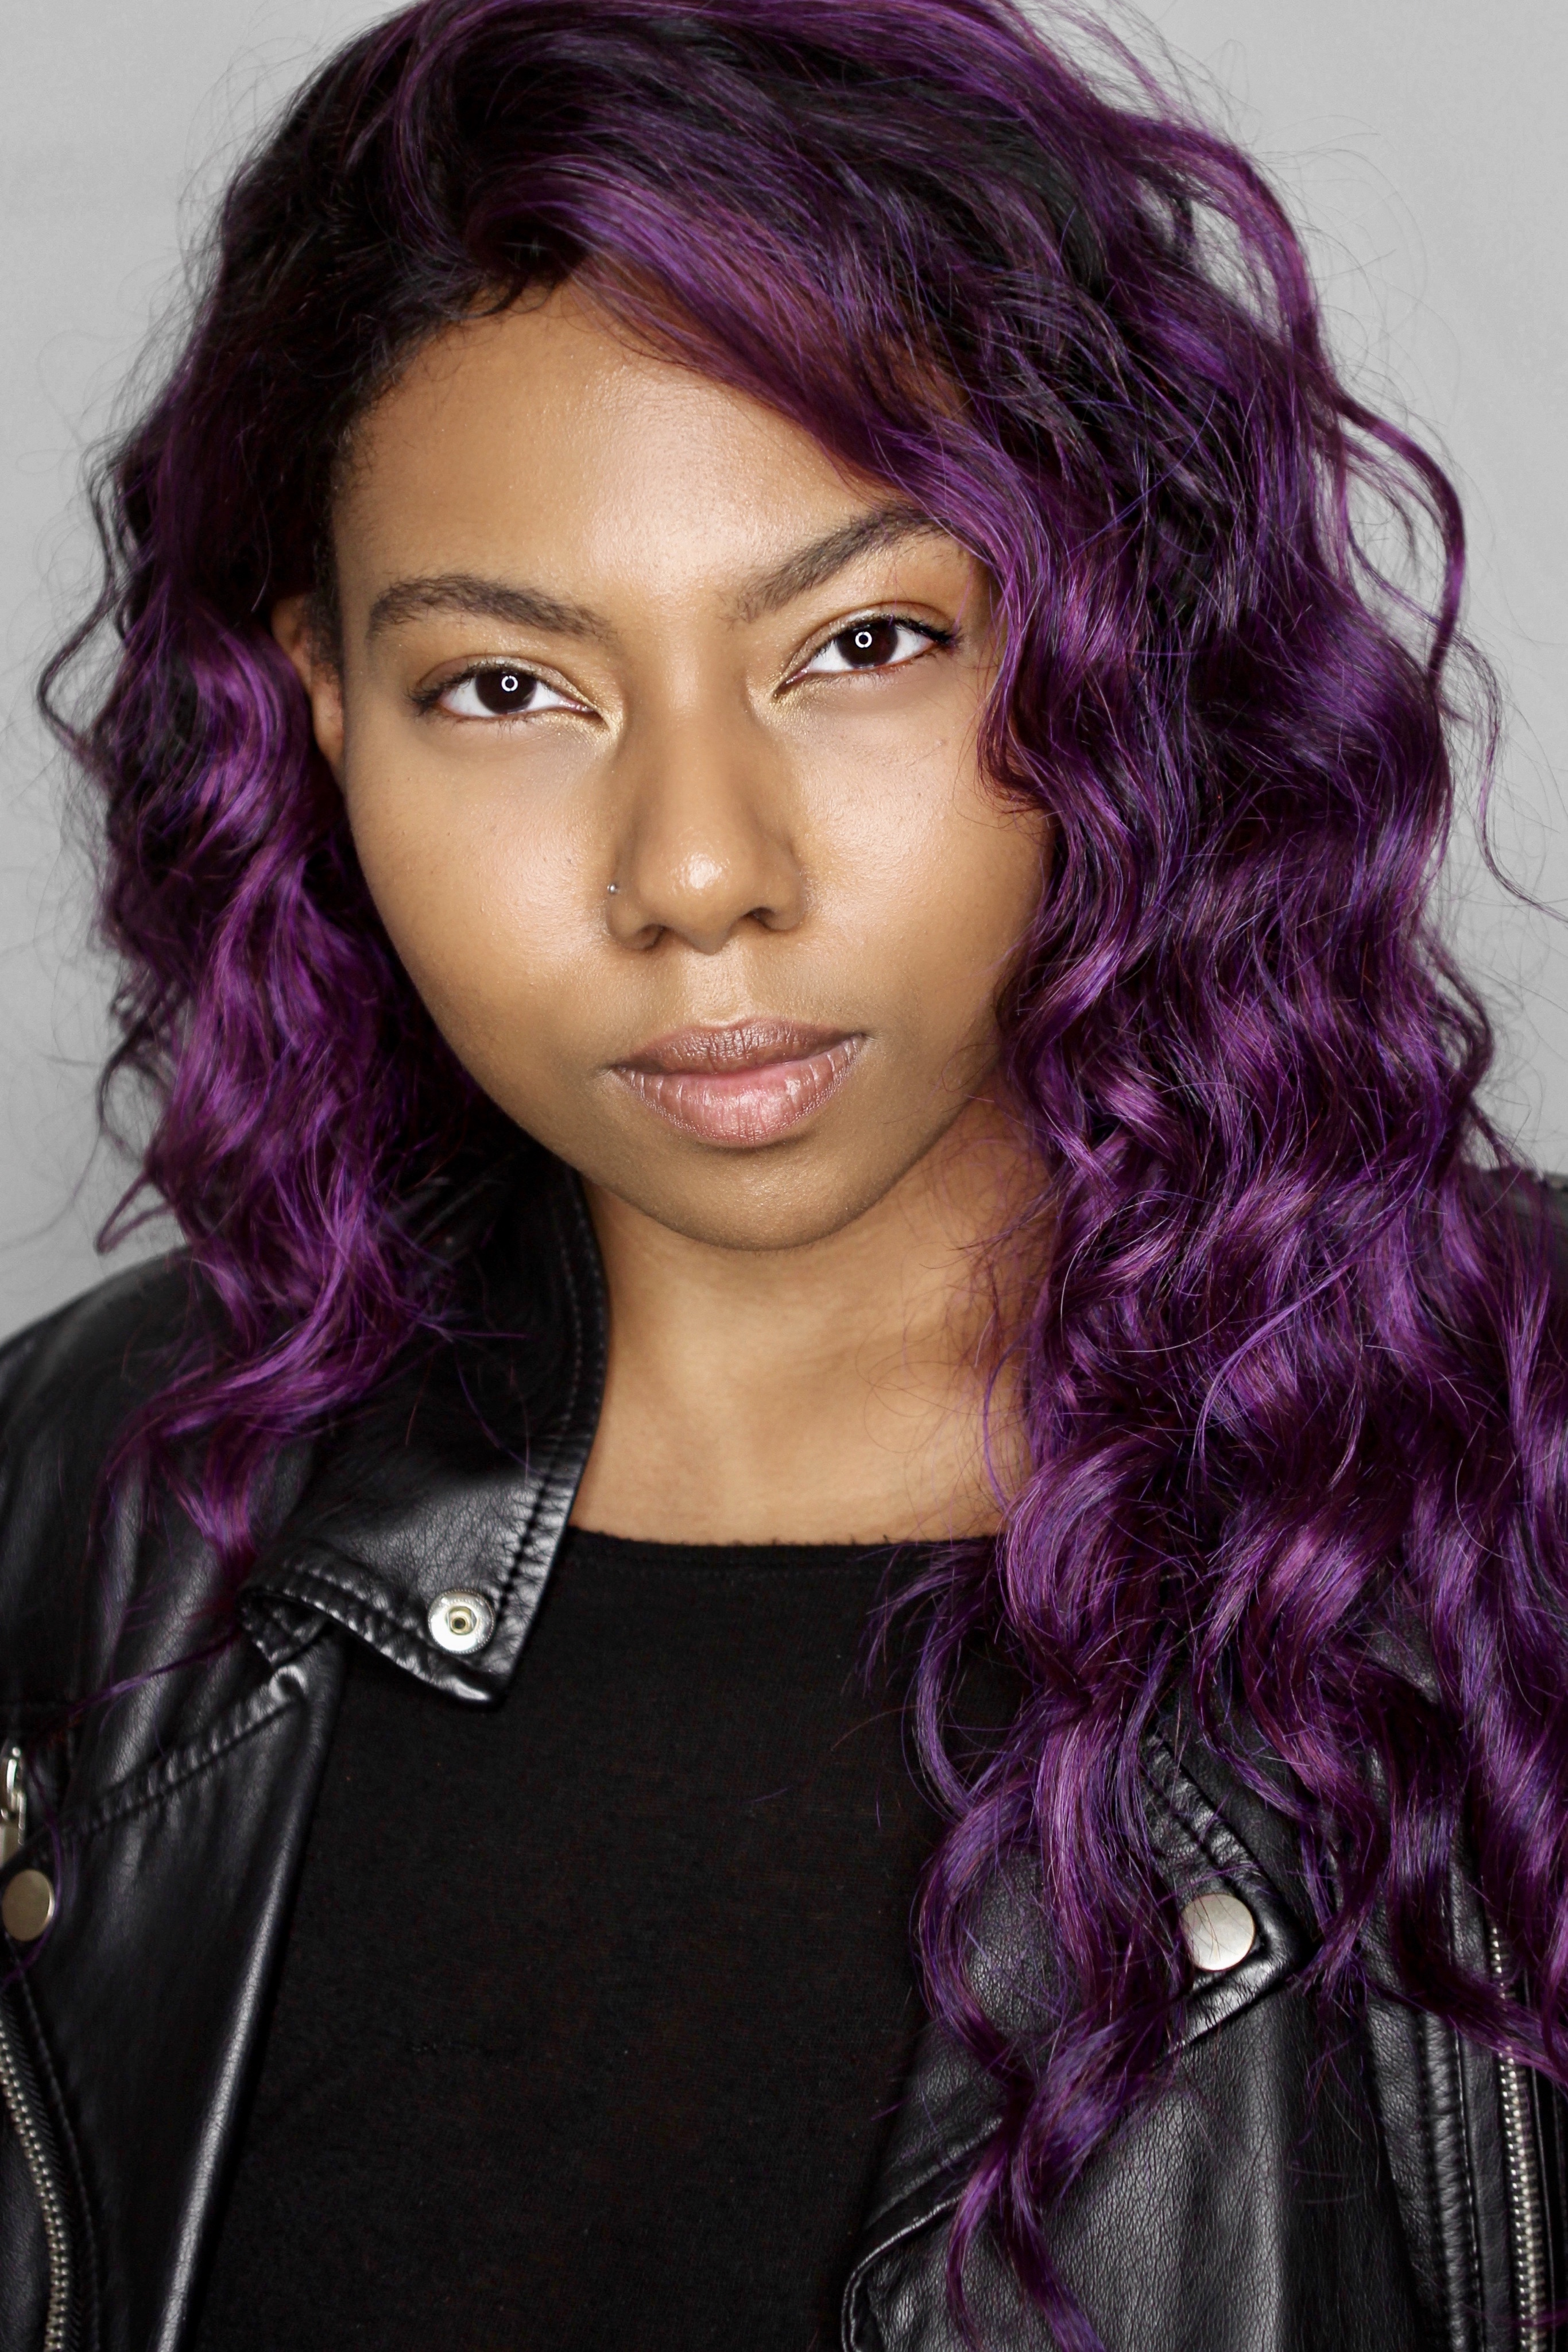 Asha Etchison_Purple Wig Headshot 1